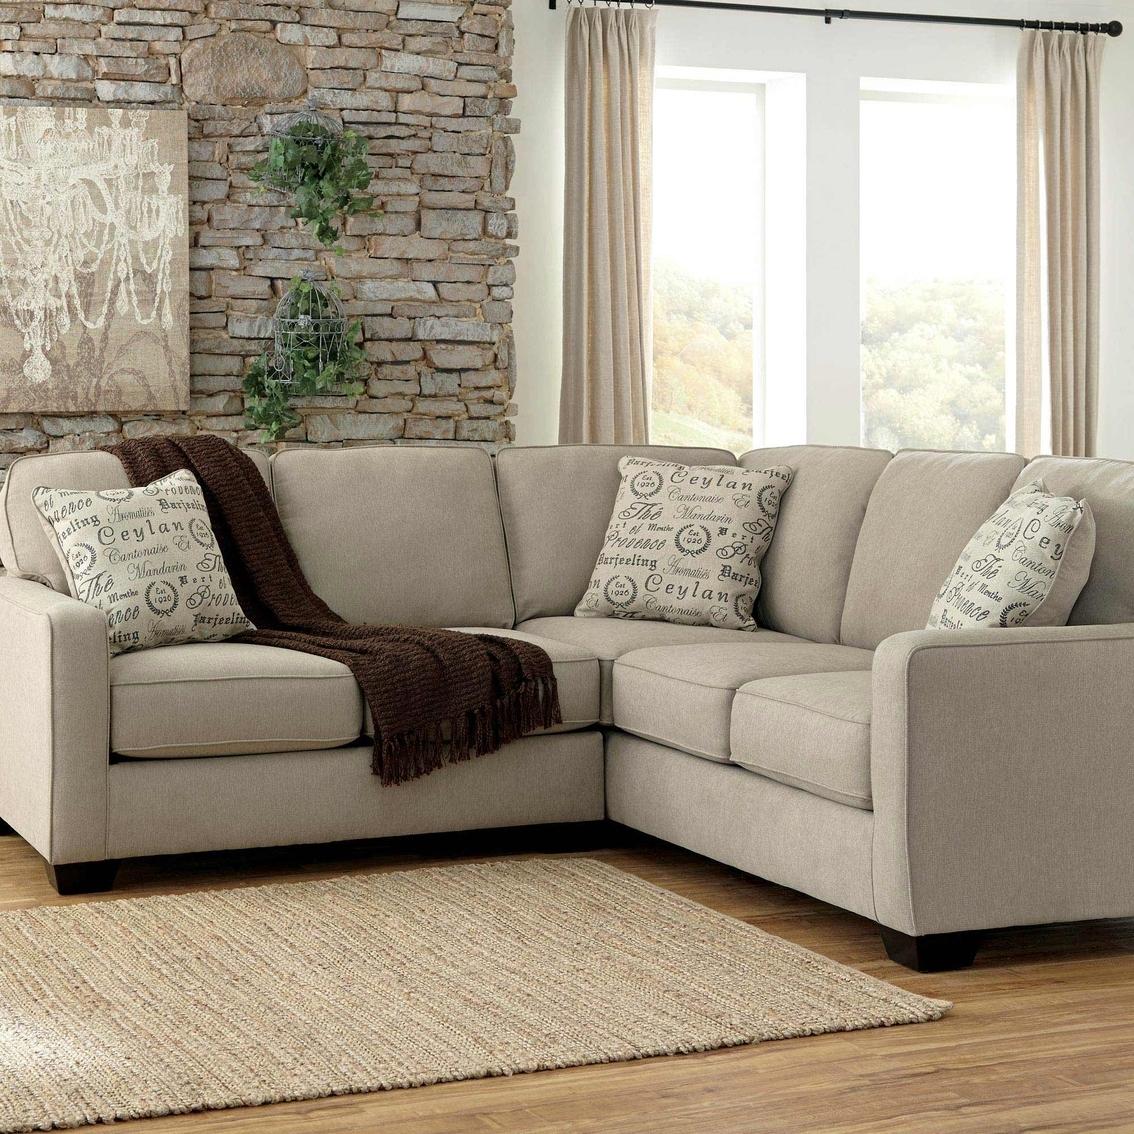 2019 2 Seat Sectional Sofas In Ashley Furniture Sectional Sofas — Cabinets, Beds, Sofas And (View 7 of 20)